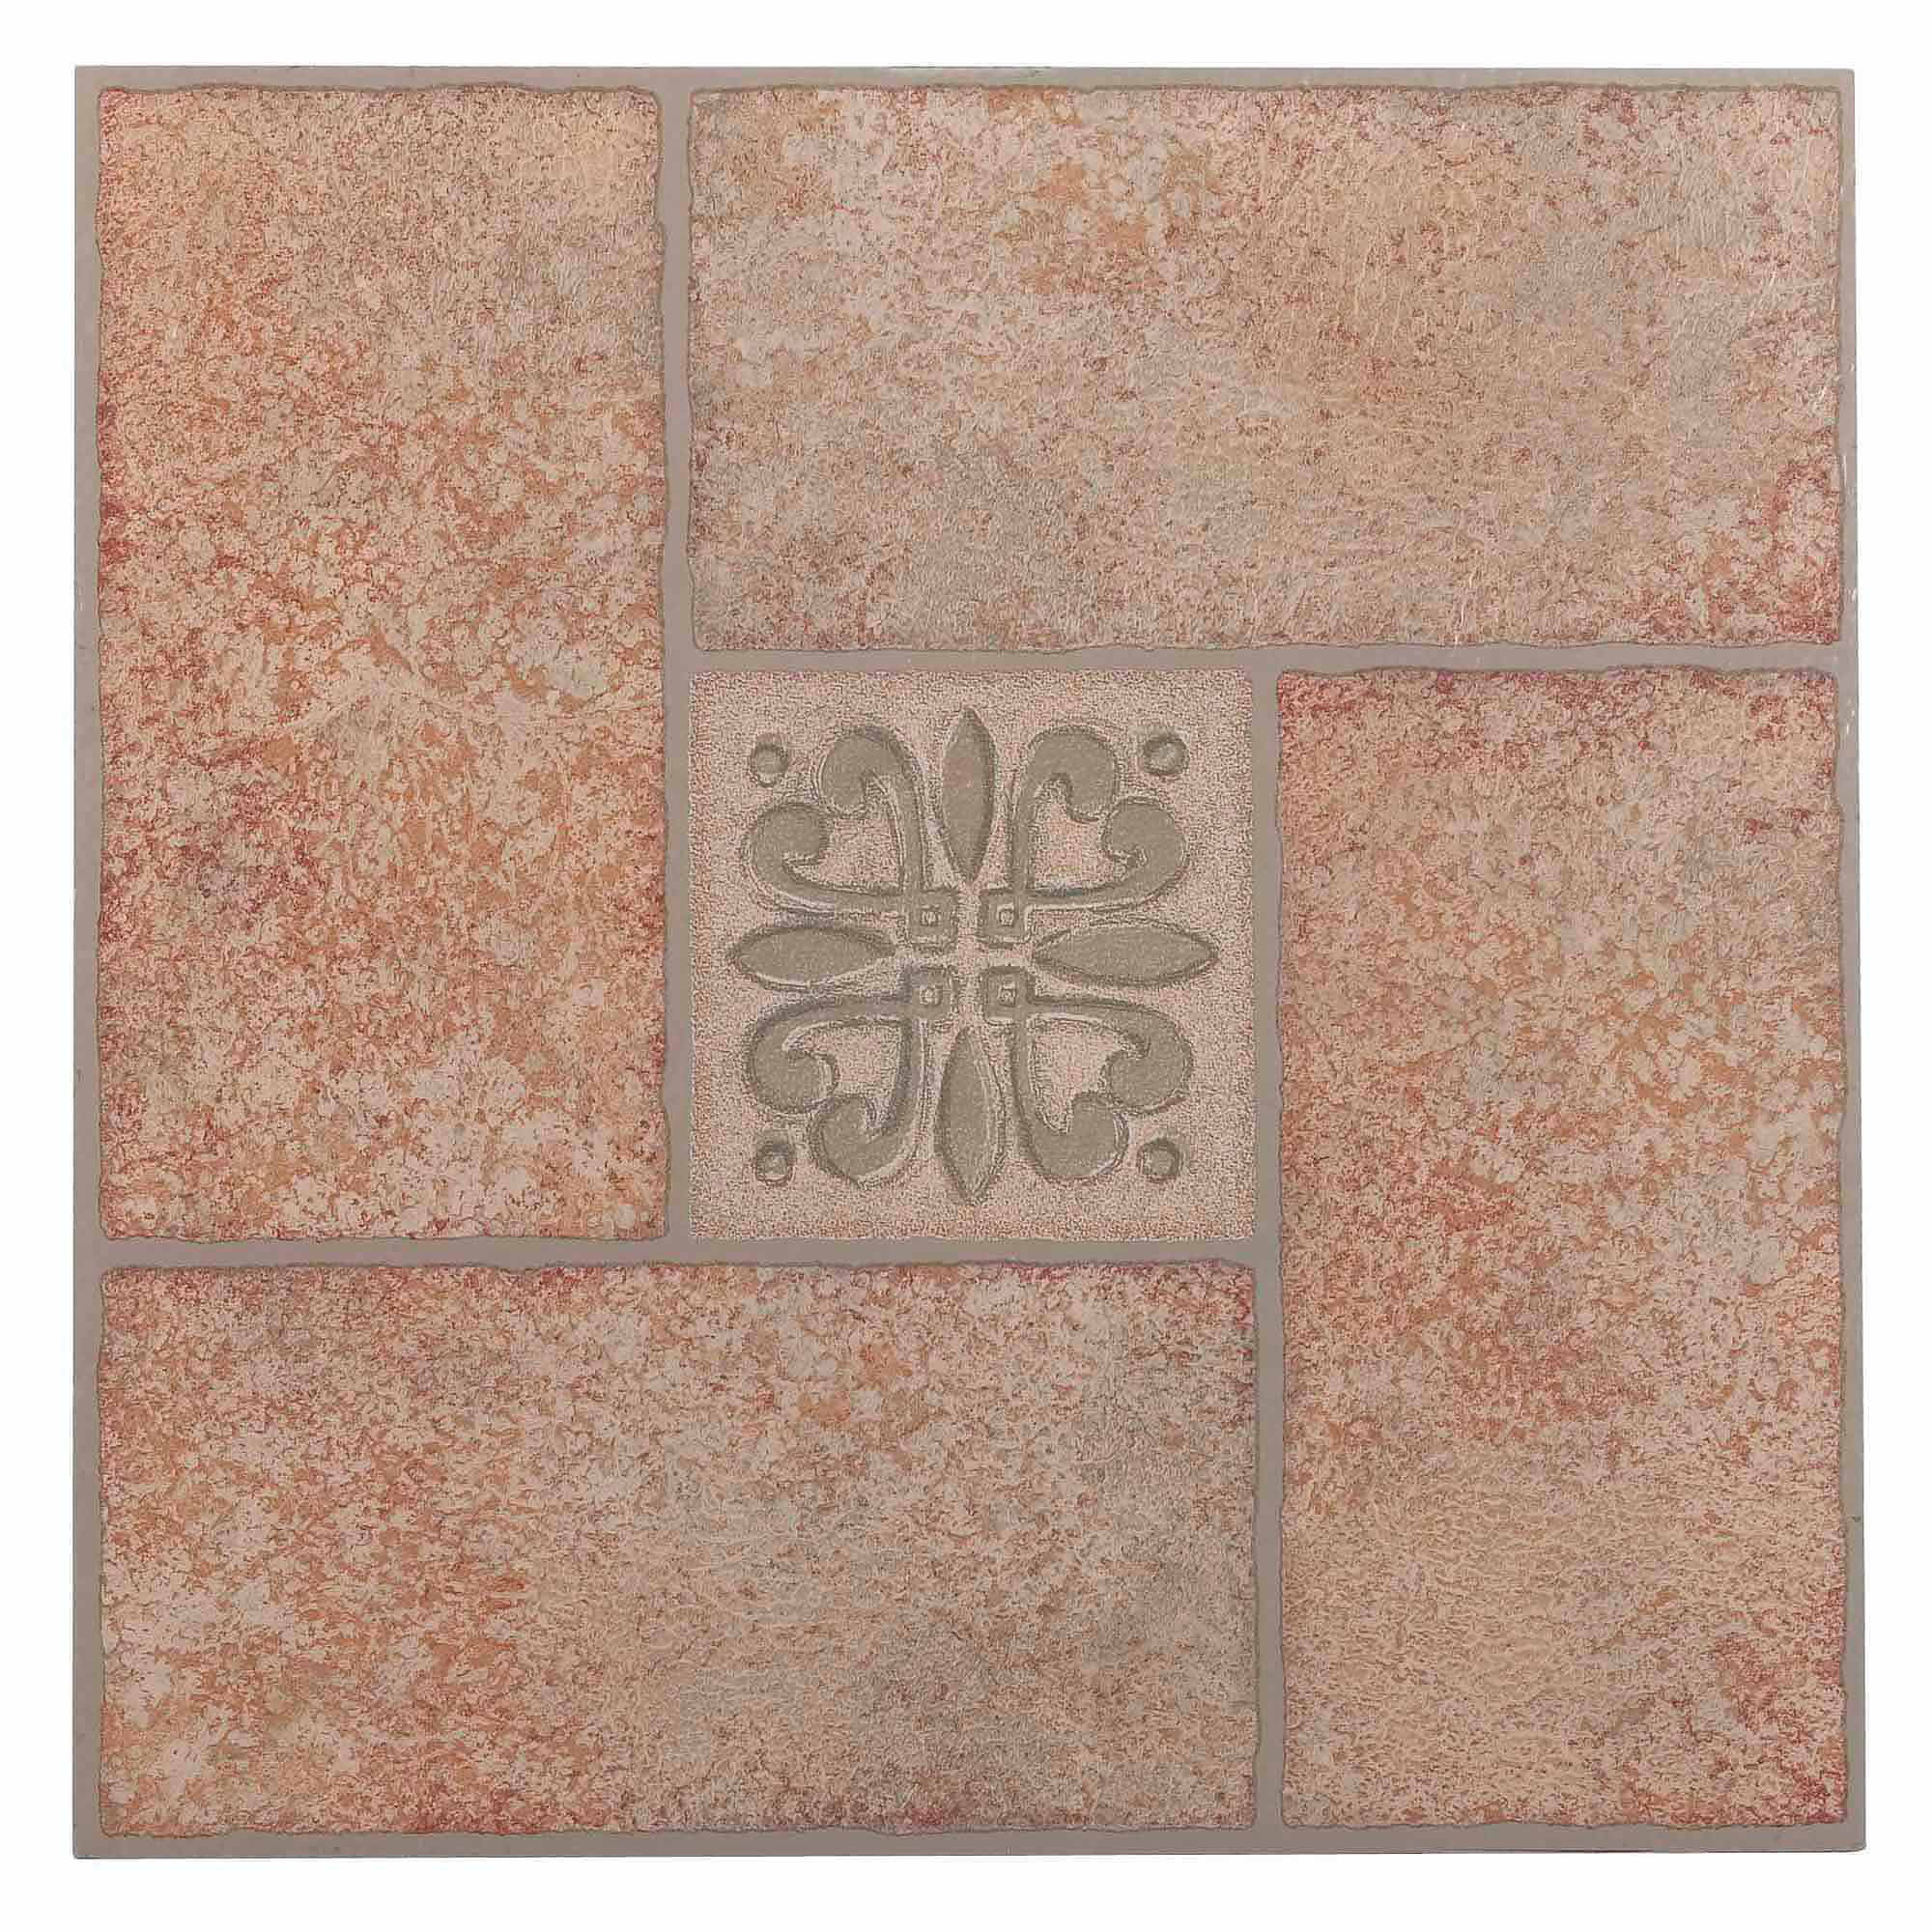 Vinyl flooring walmart nexus beige terracotta motif center 12x12 self adhesive vinyl floor tile 20 tiles20 dailygadgetfo Gallery